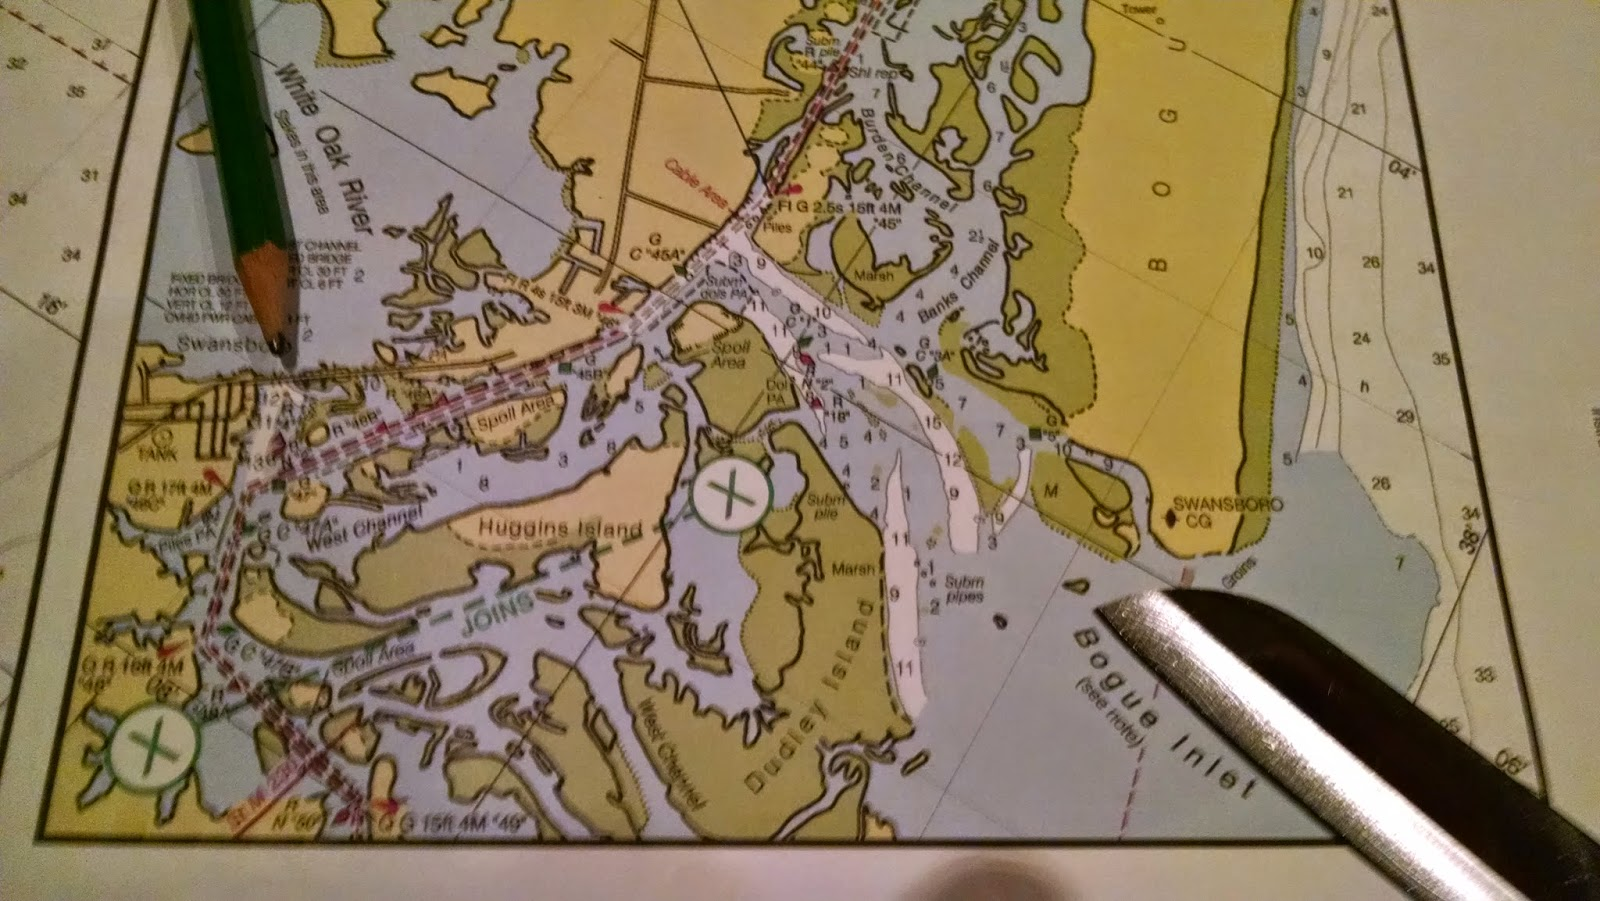 Ilene the boat november 7 morehead city to swansboro 204 miles the pencil is pointing to the white spot to the right of the town where we are anchored in the lower left just below the line x x is a magenta line nvjuhfo Images